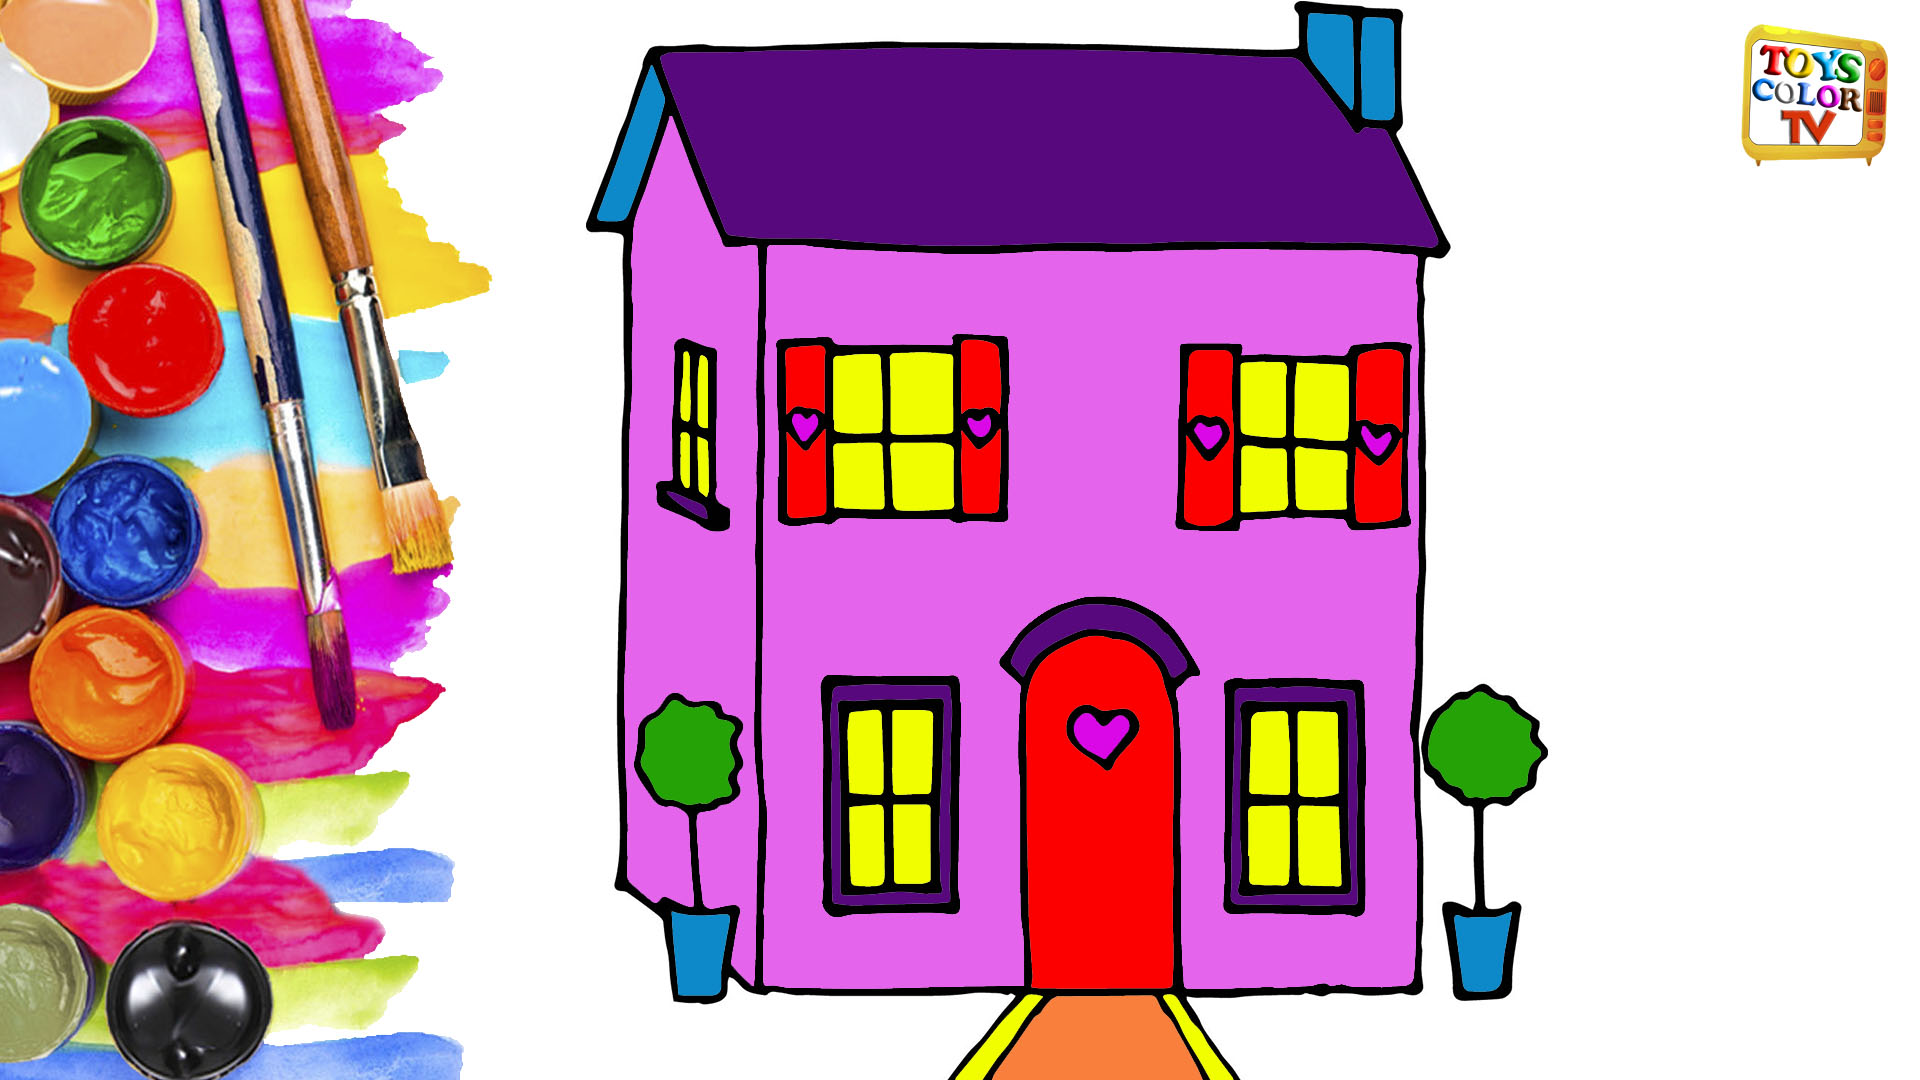 's House, Art Colours for Kids with Colored Markers, Toys Color TV